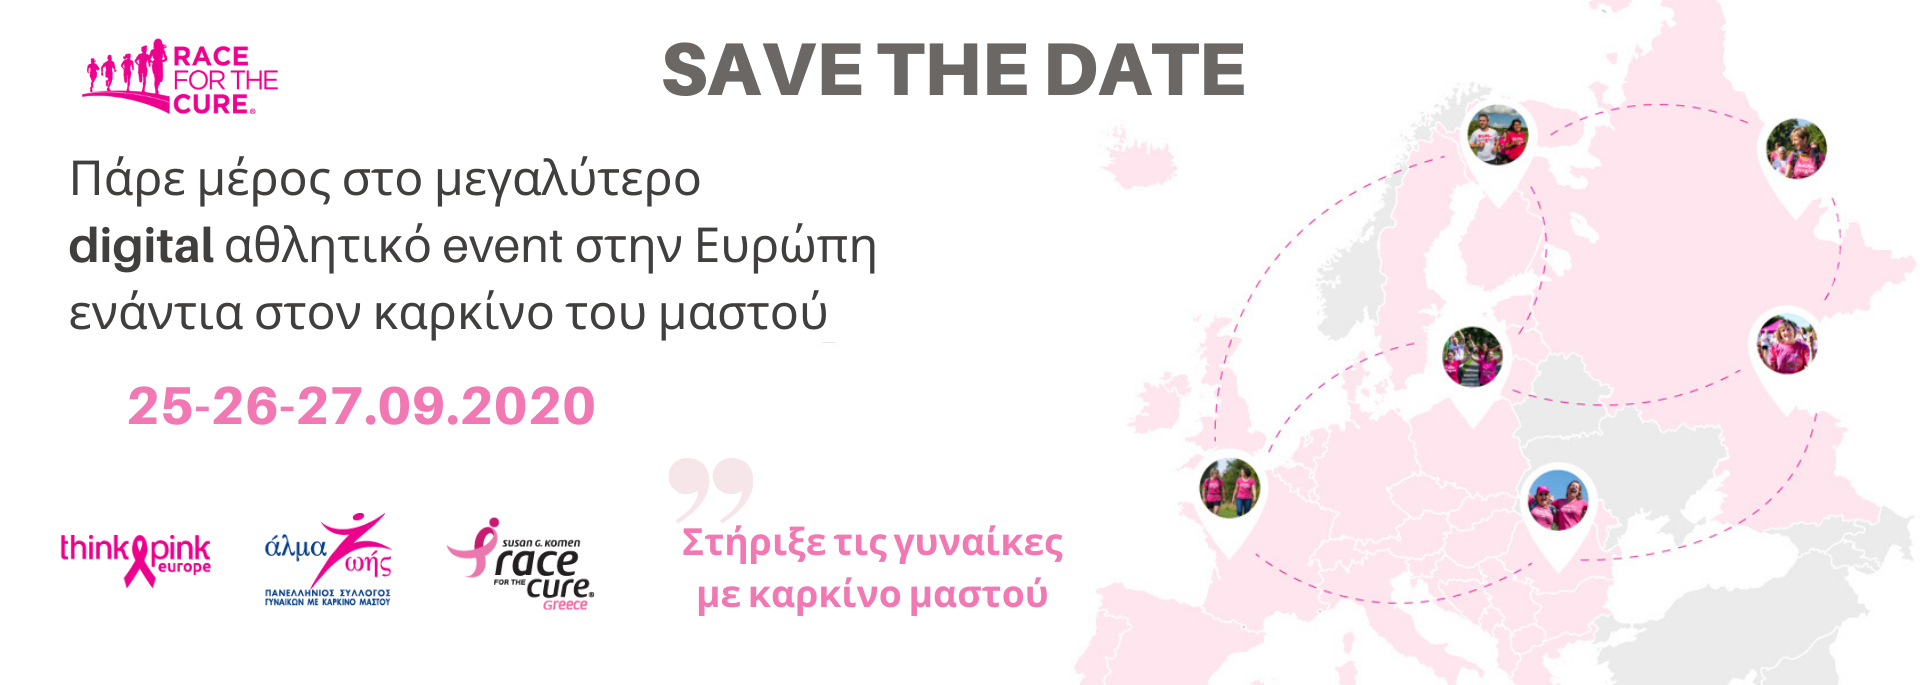 Greece Race for the Cure